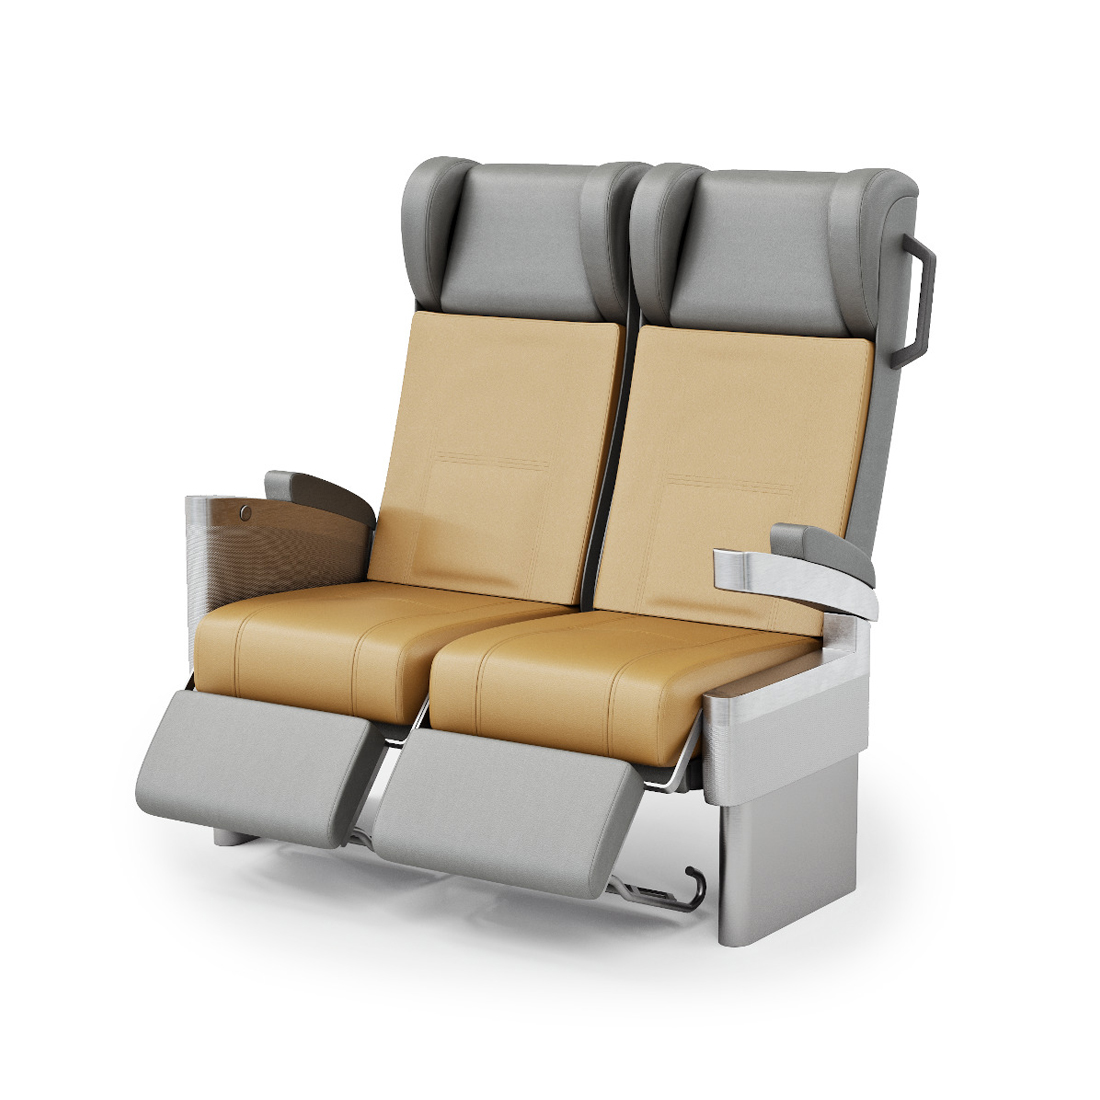 3d visualization white background rendering train chair